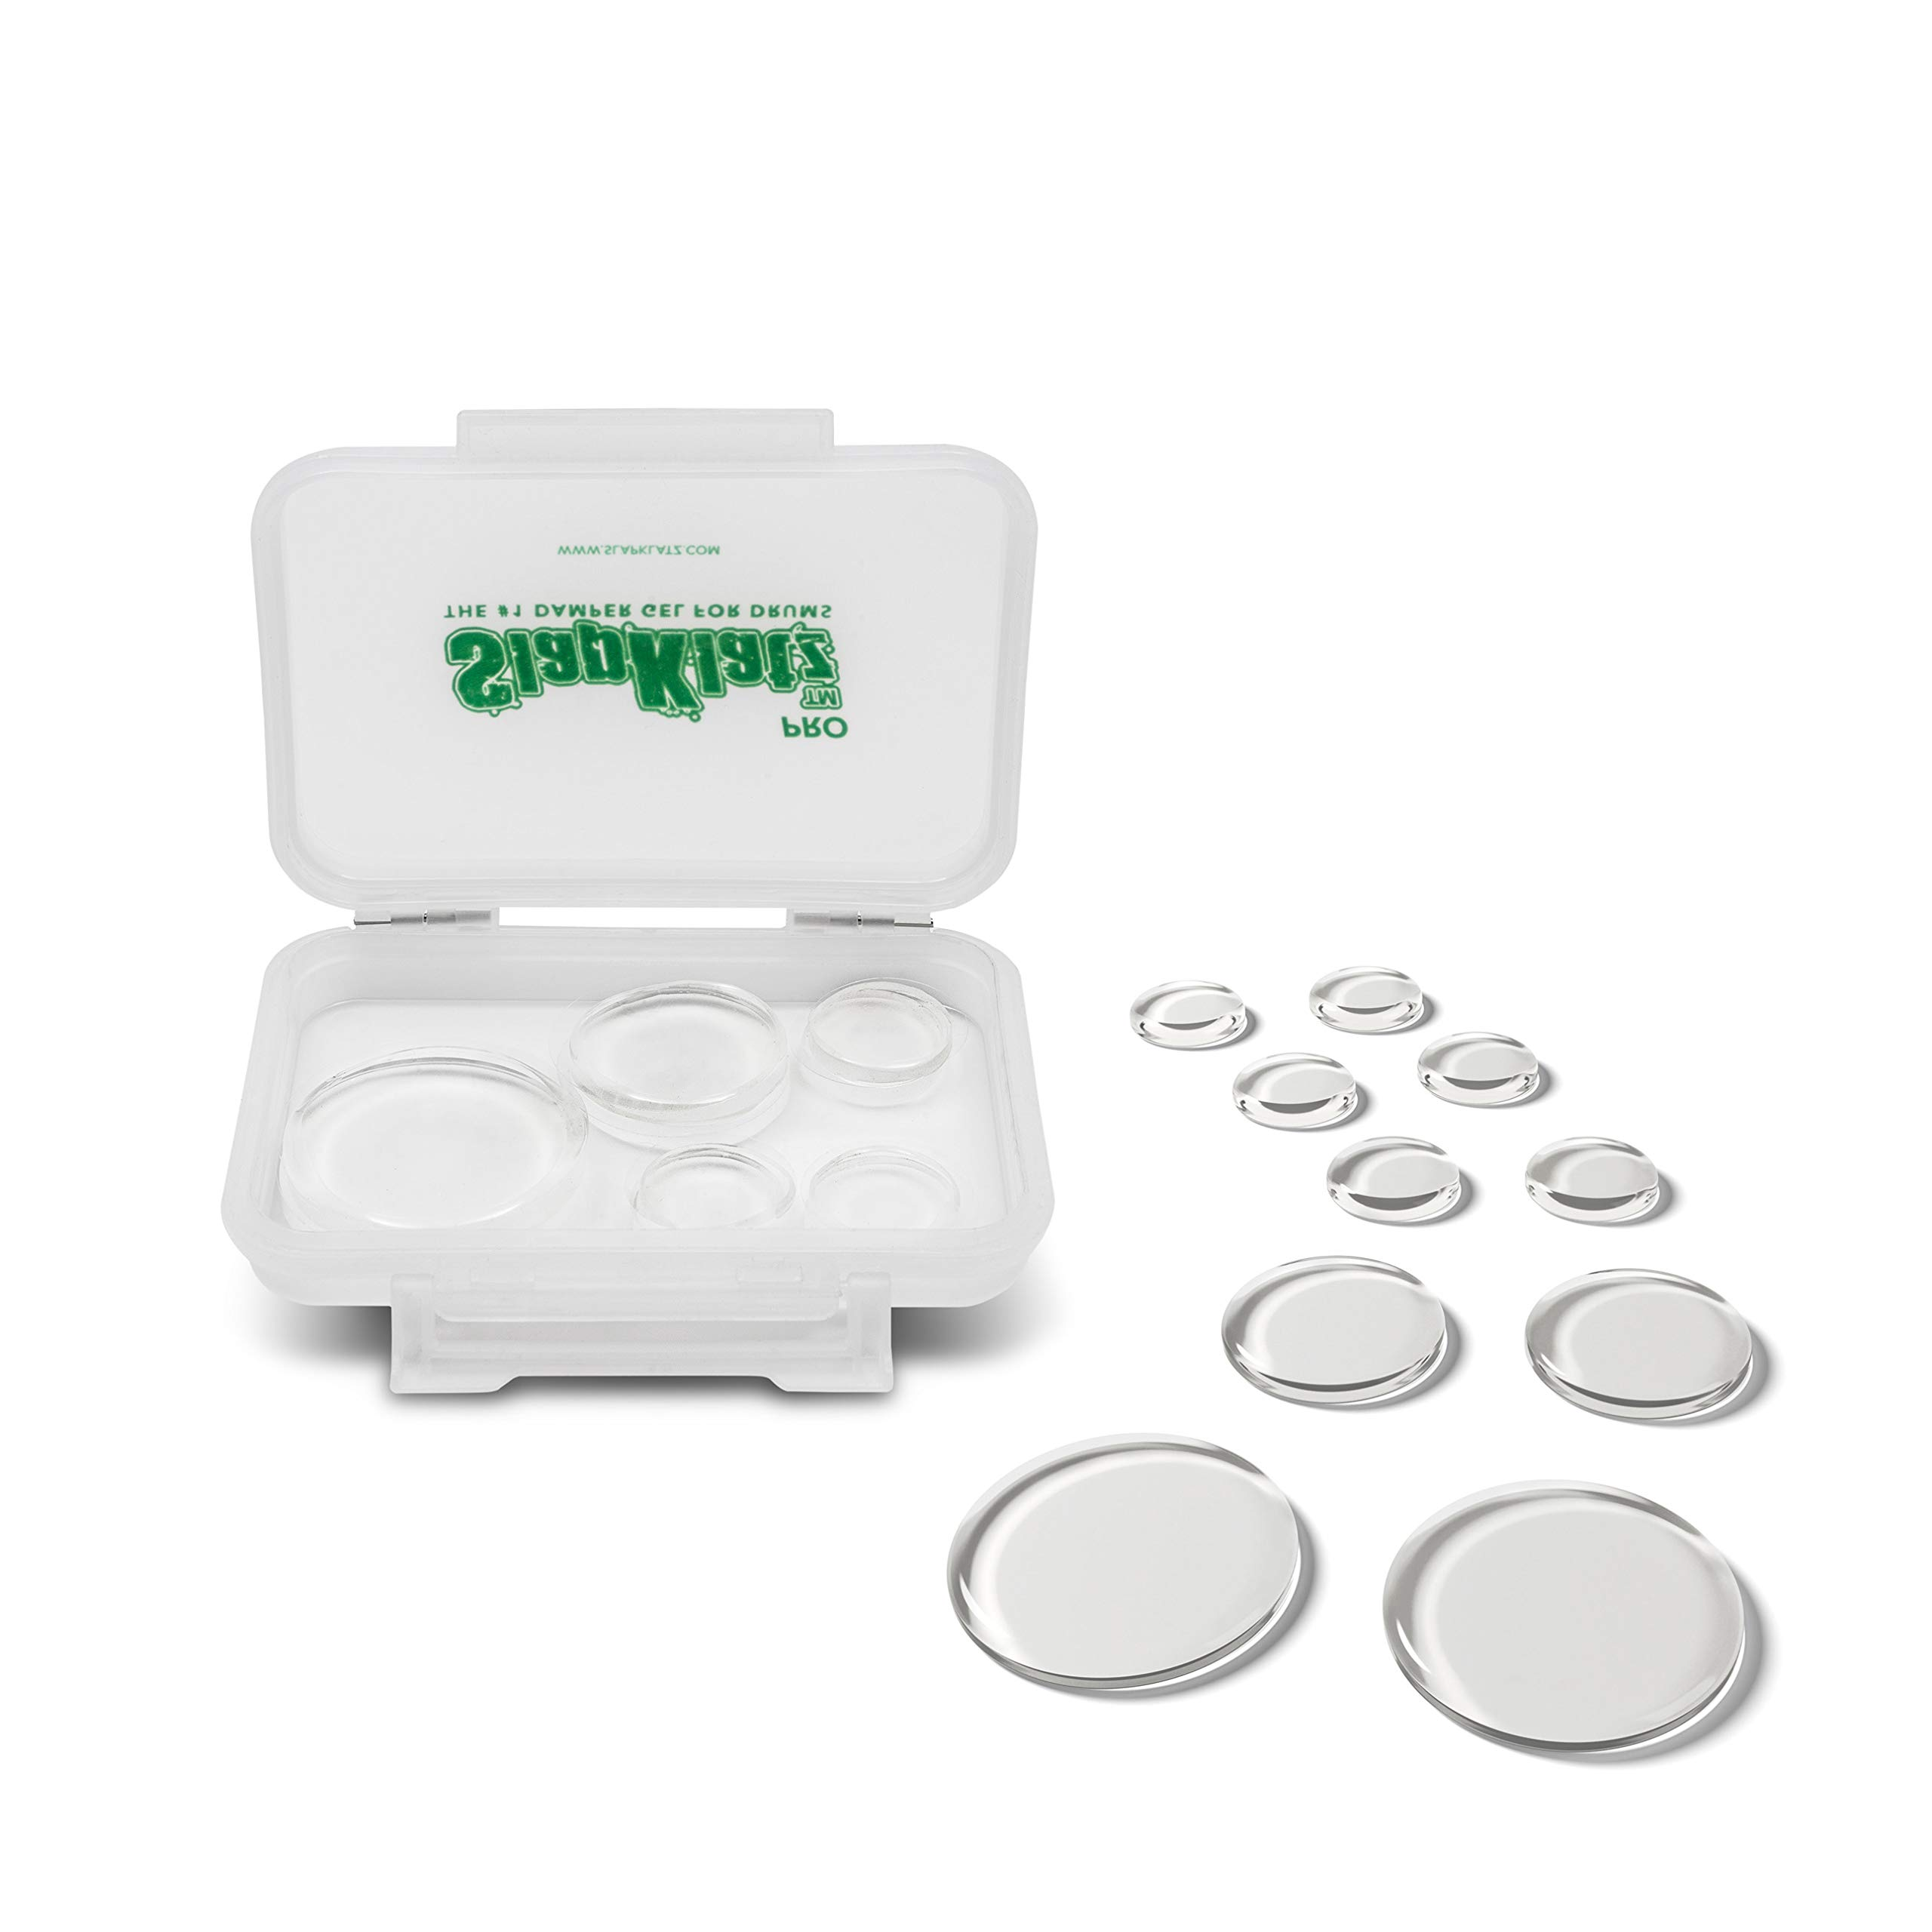 SlapKlatz Pro - Clear | 10 Pieces of Superior Drum Gel Dampeners in 3 Sizes | FREE rugged case included | Non-toxic